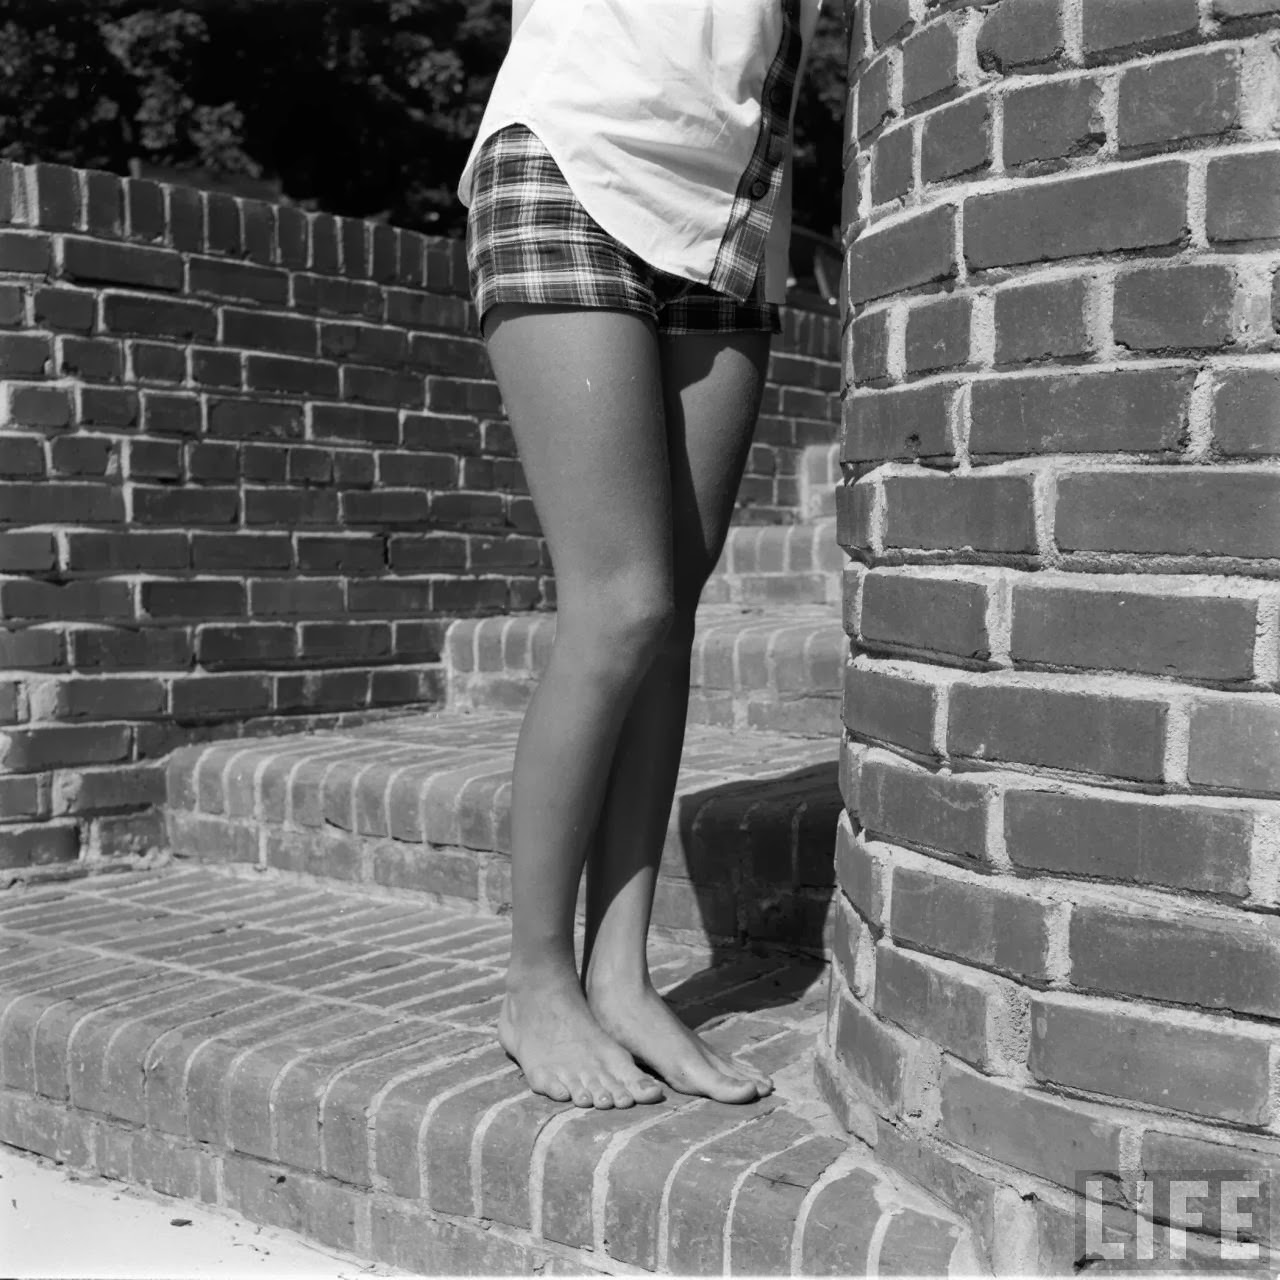 Short Shorts in the 1950's (7)